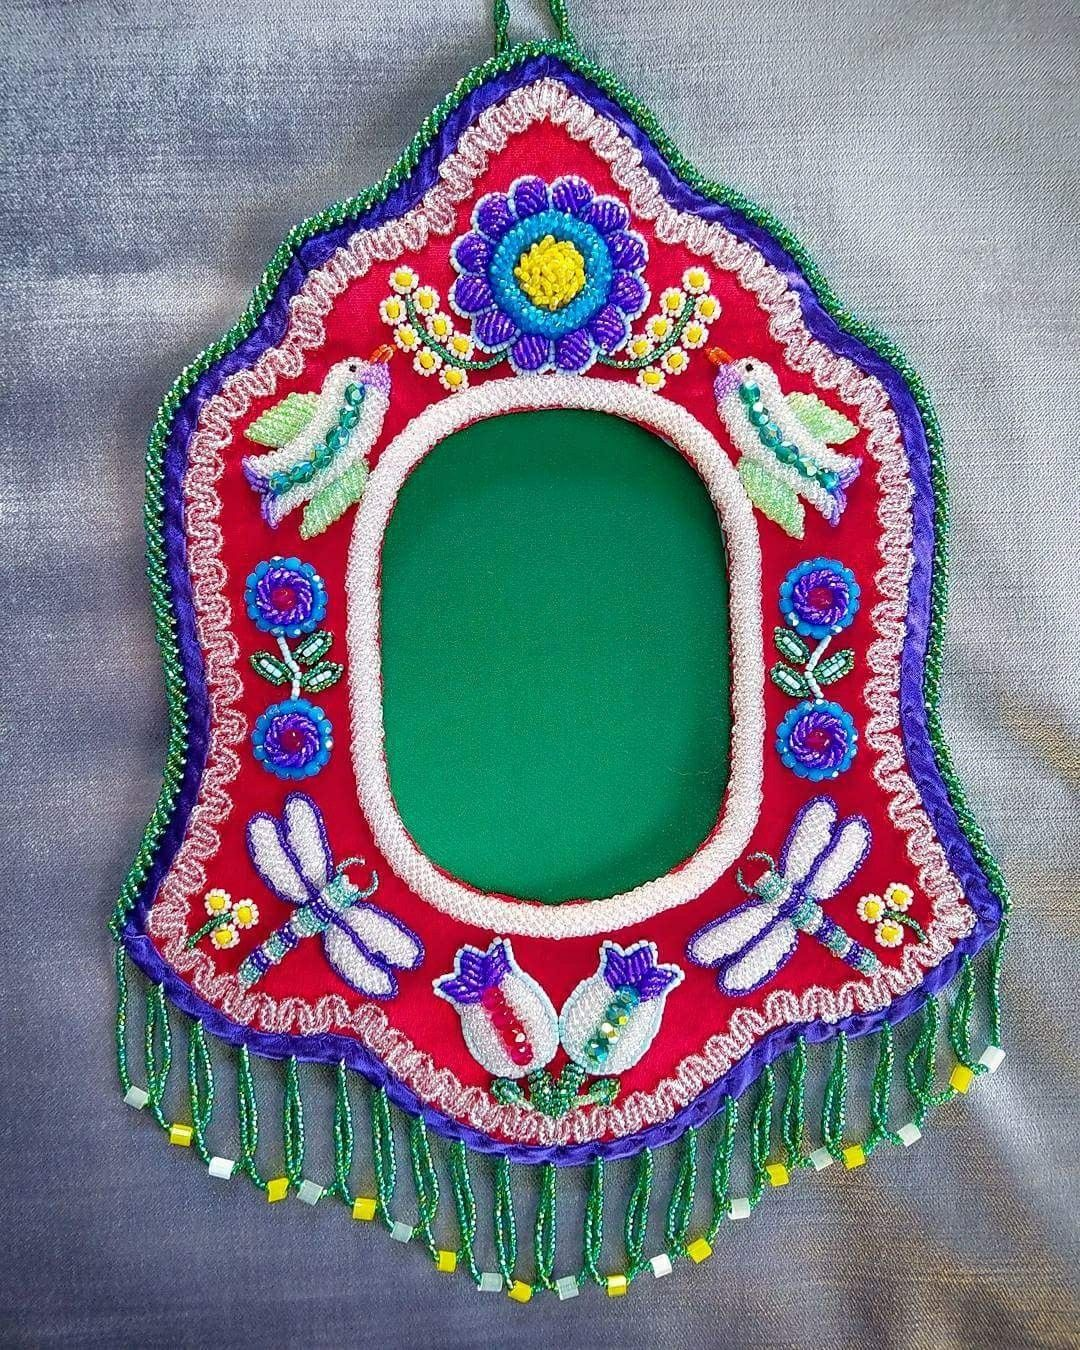 Tuscarora beaded picture frame by Grant Jonathan c. 2017 ...